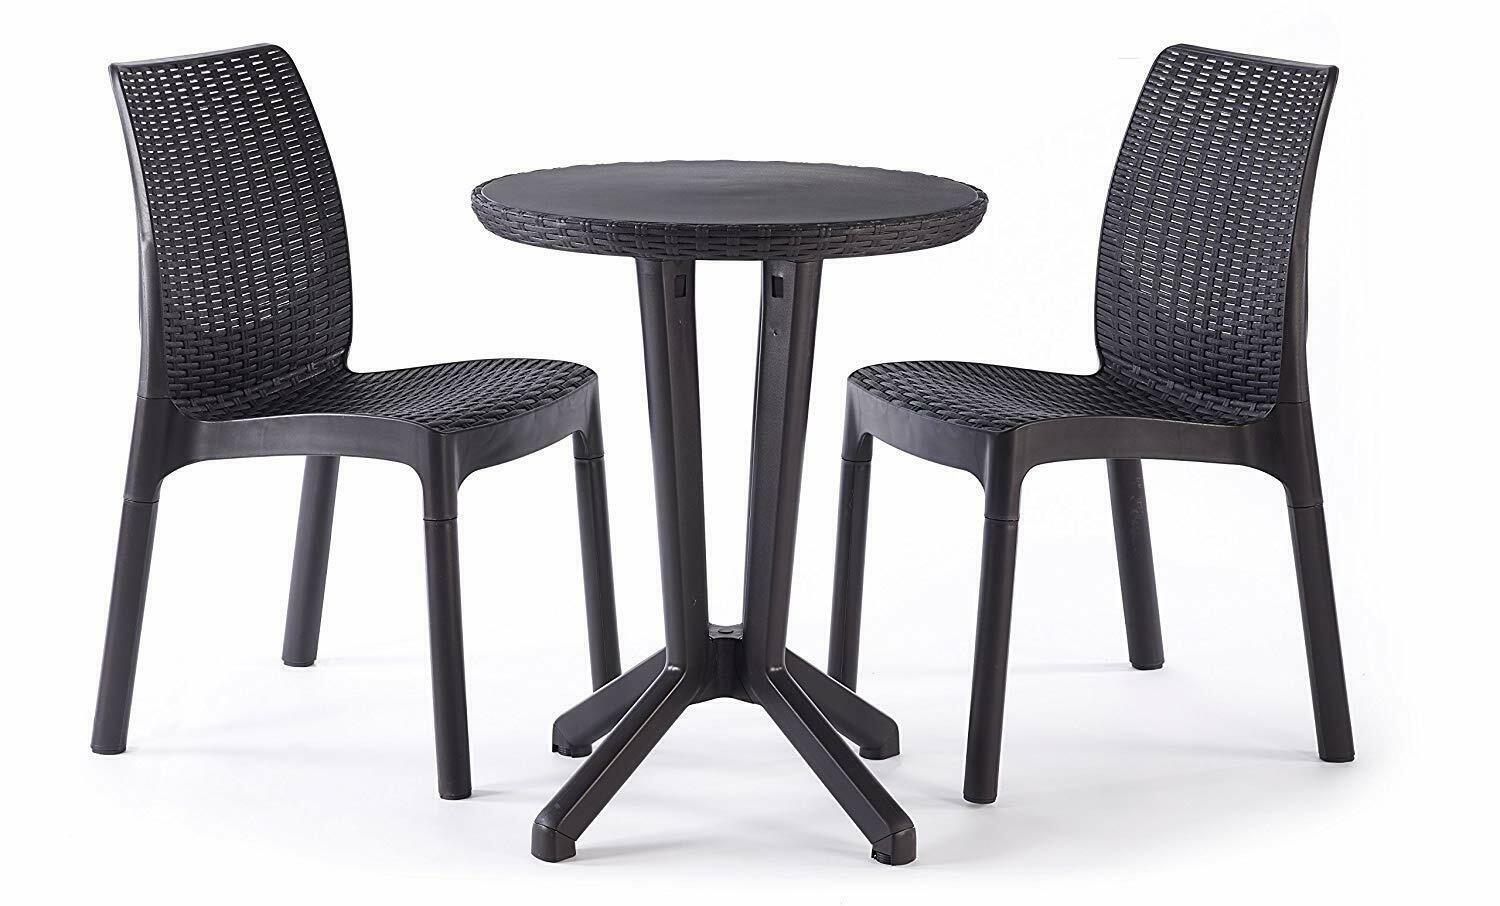 Garden Furniture - Keter Bistro Balcony Patio 2 Seater Rattan Outdoor Garden Furniture Set Graphite